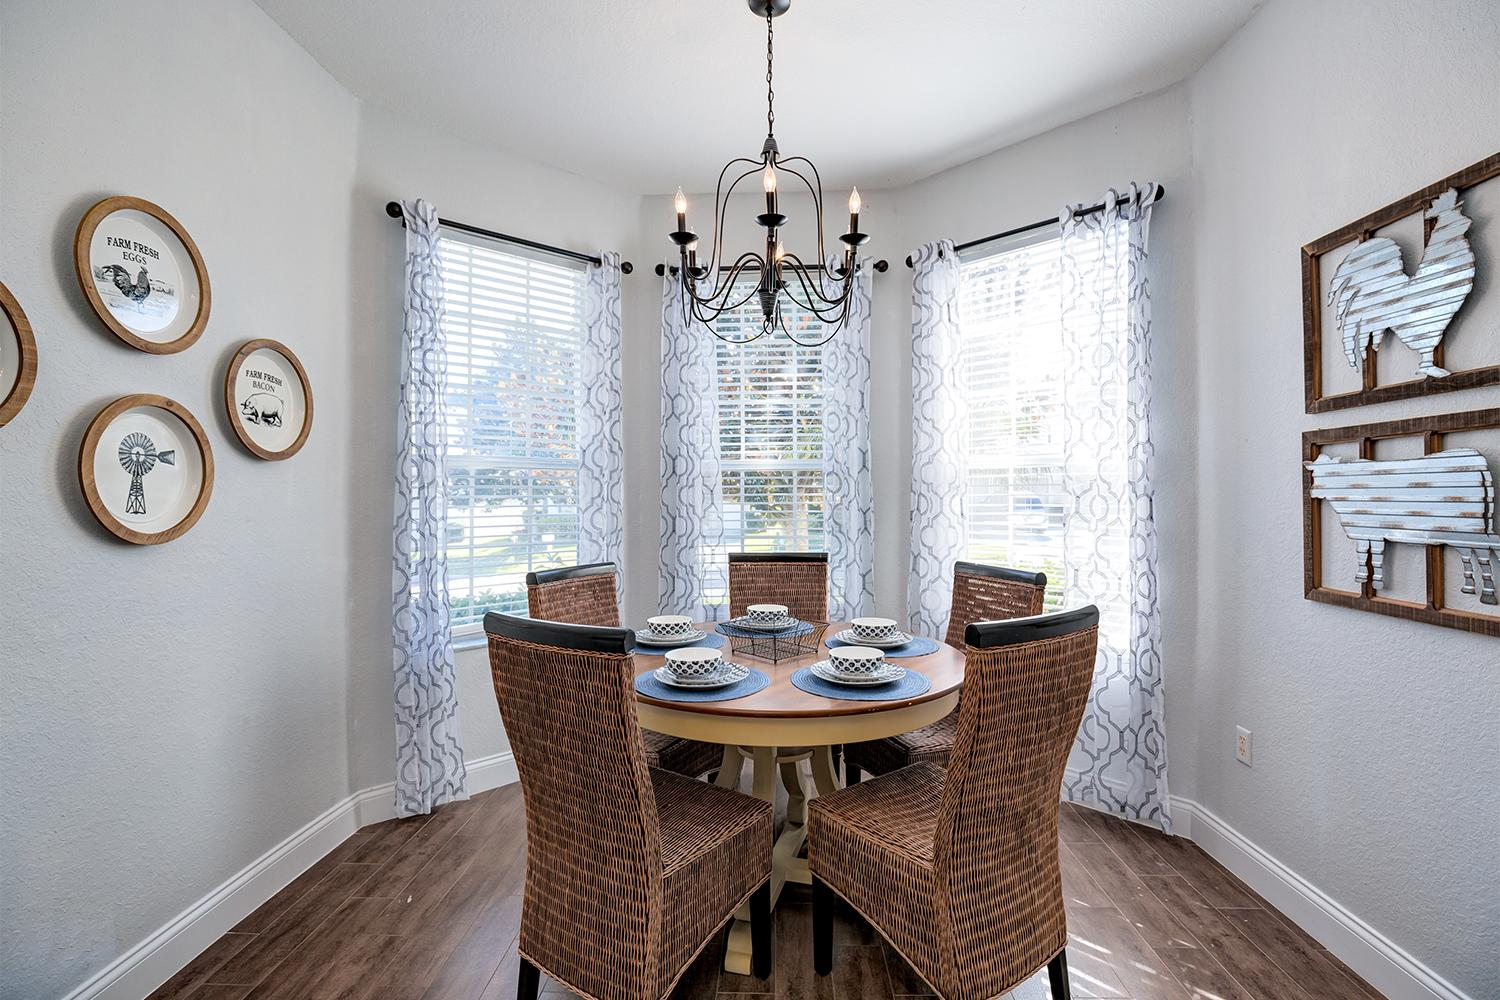 Breakfast nook in the kitchen that can comfortably seat 5